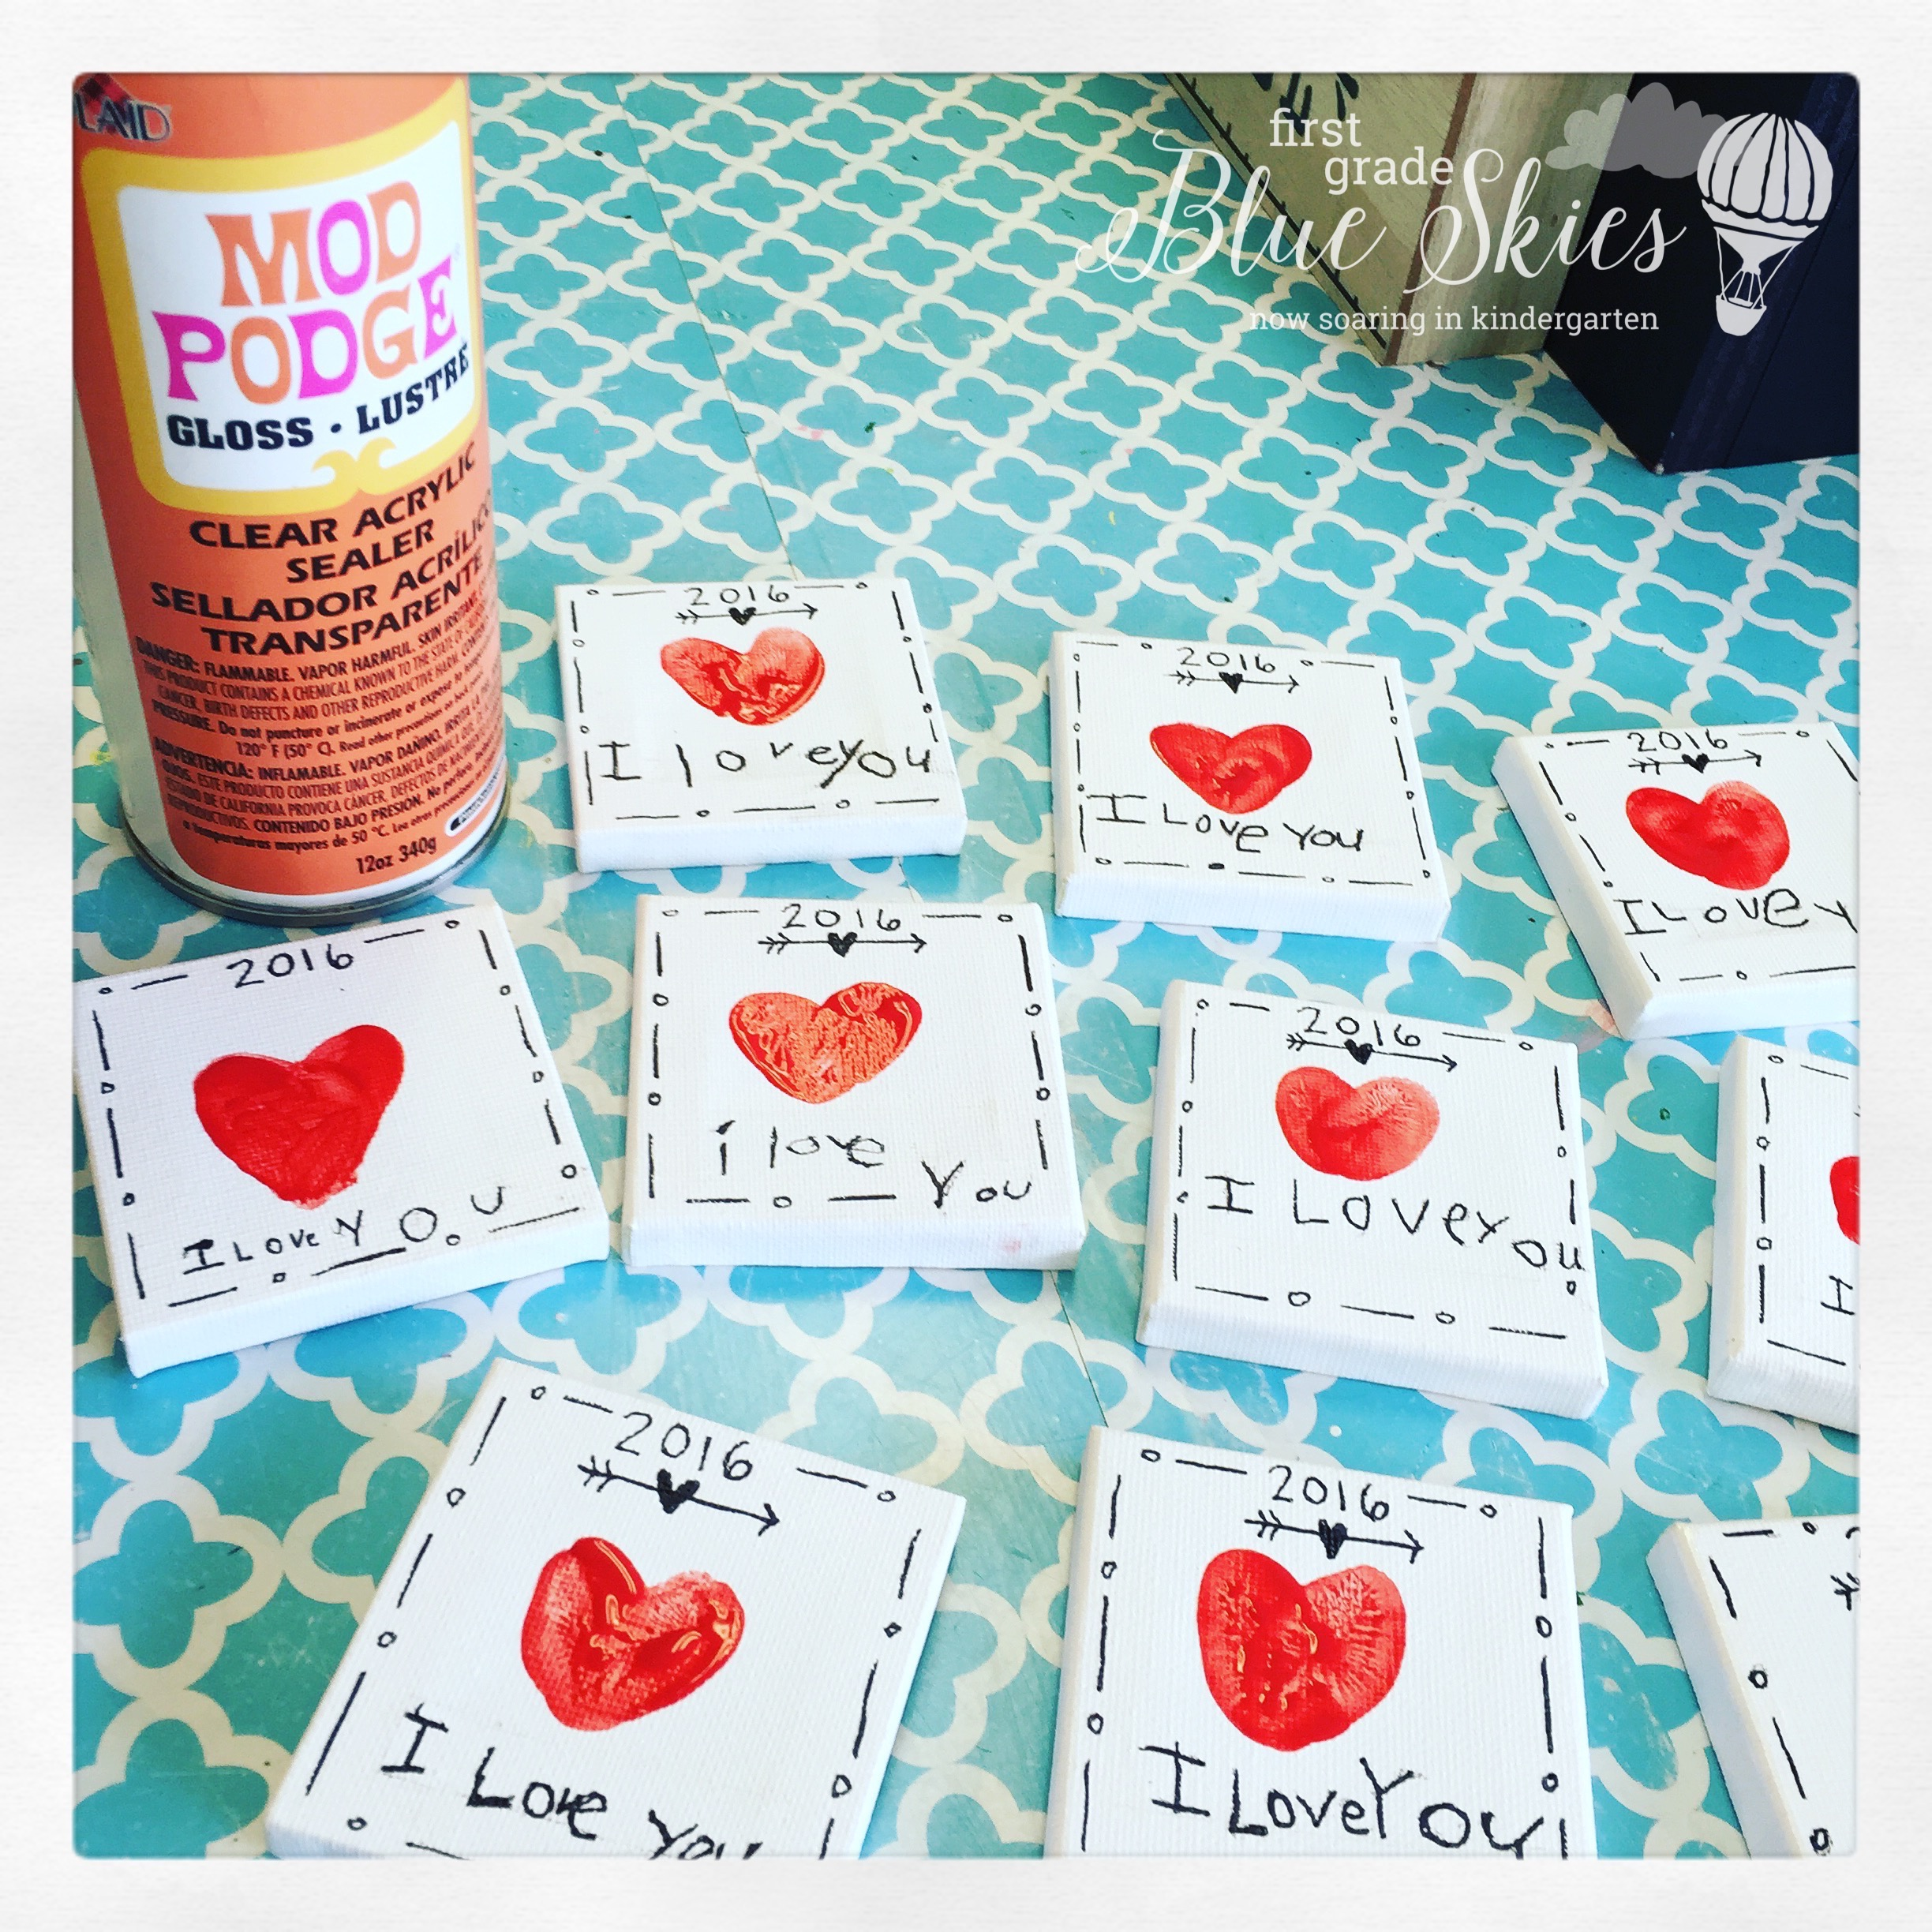 Mother 39 s day thumbprint magnet gift first grade blue skies for Mother s day crafts for kindergarten